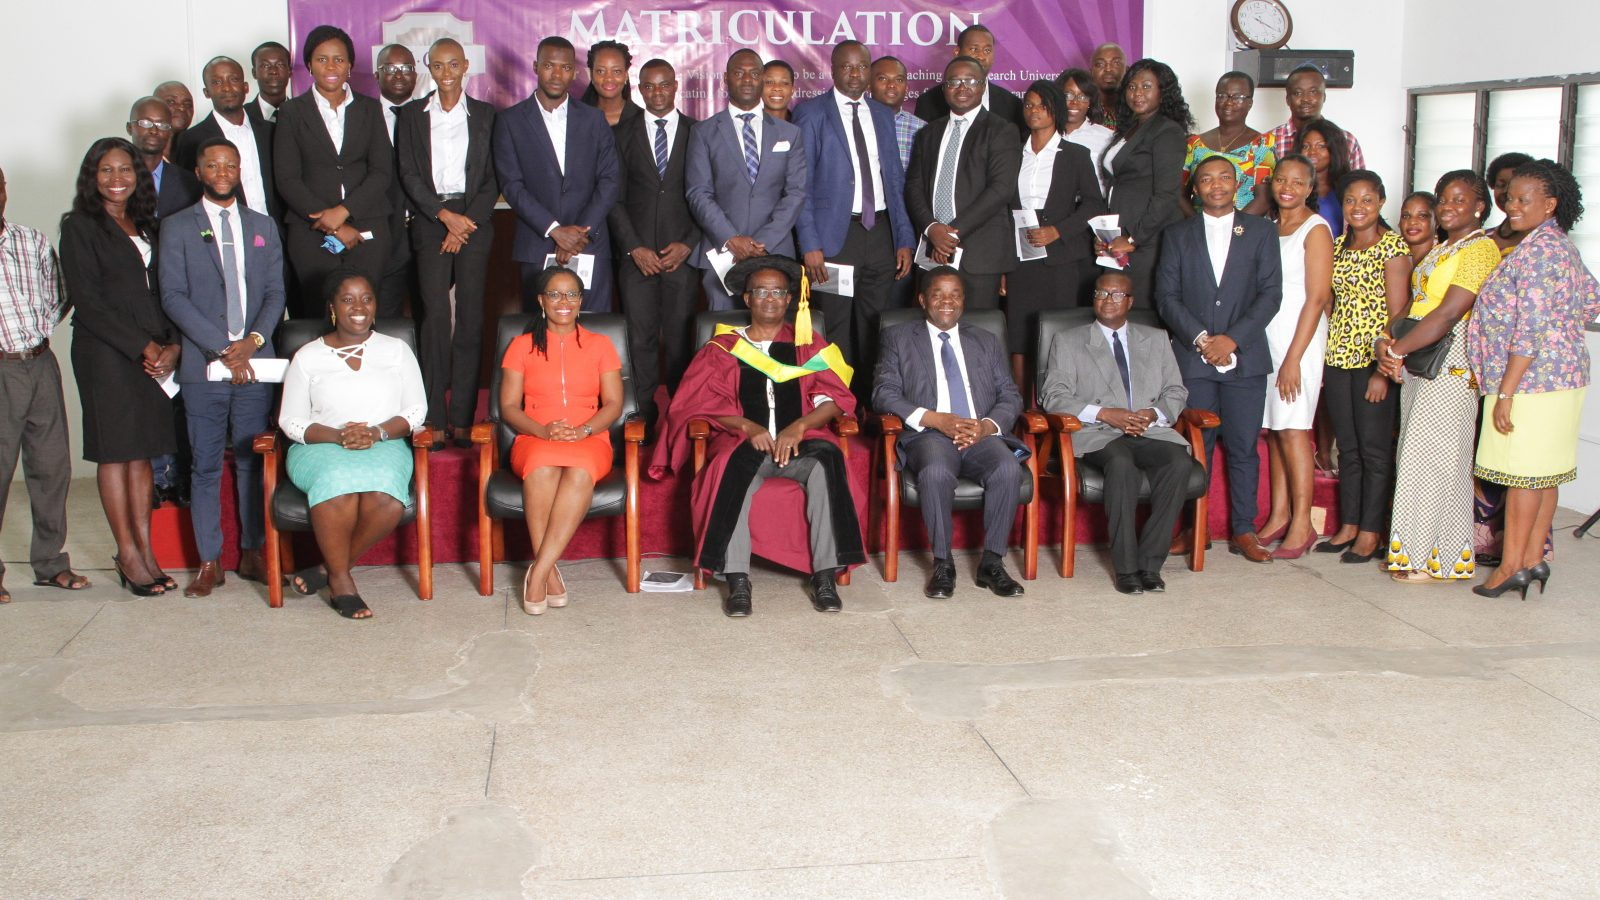 Matriculation Group Picture